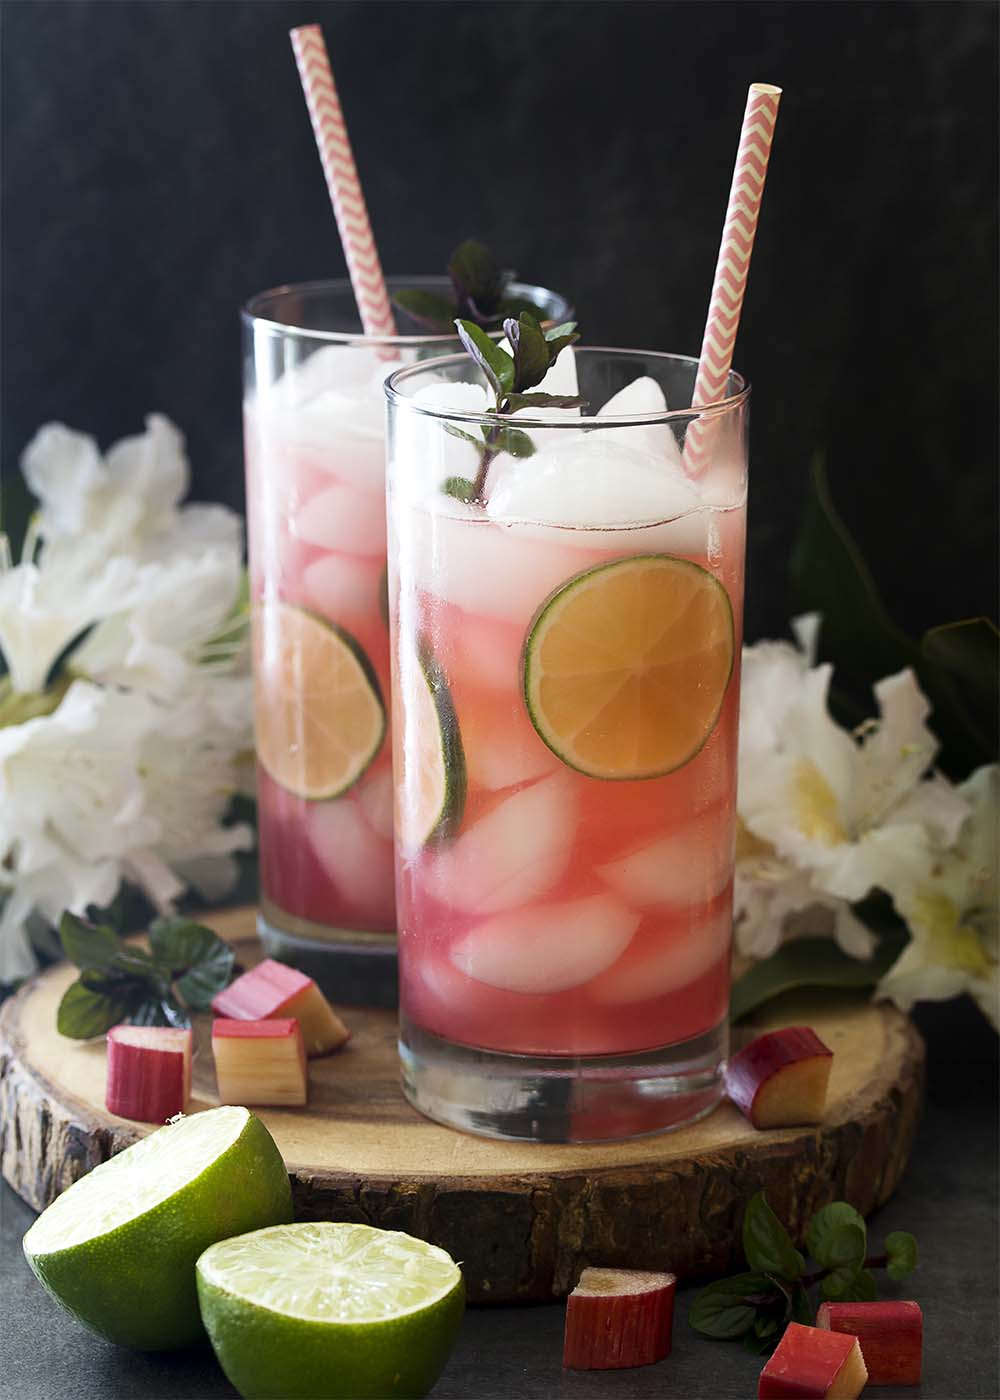 Two tall glasses of cold and fizzy rhubarb rickeys with sprigs of mint and slices of lime.